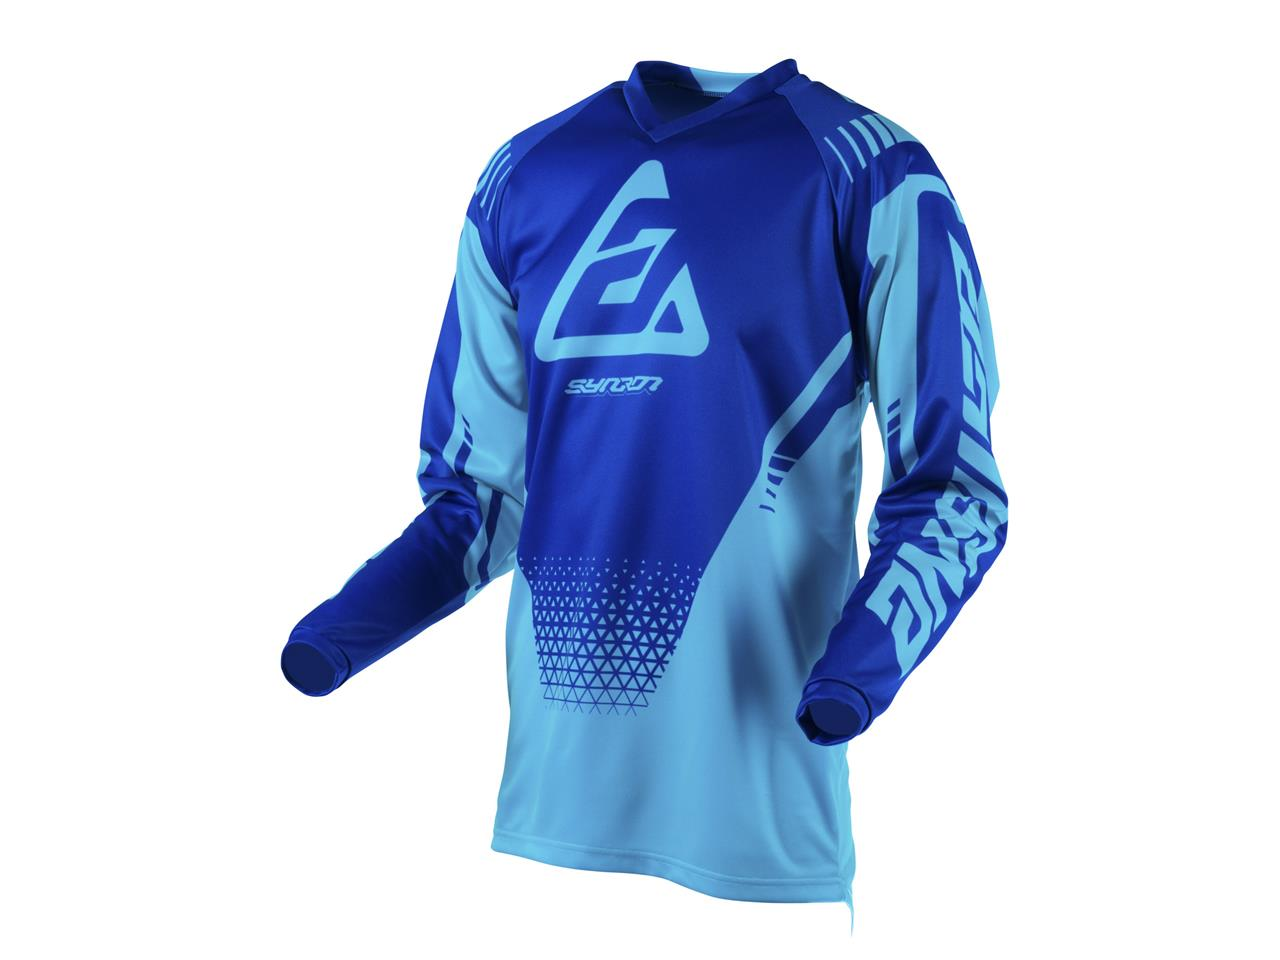 Maillot answer syncron drift astana reflex blue 1